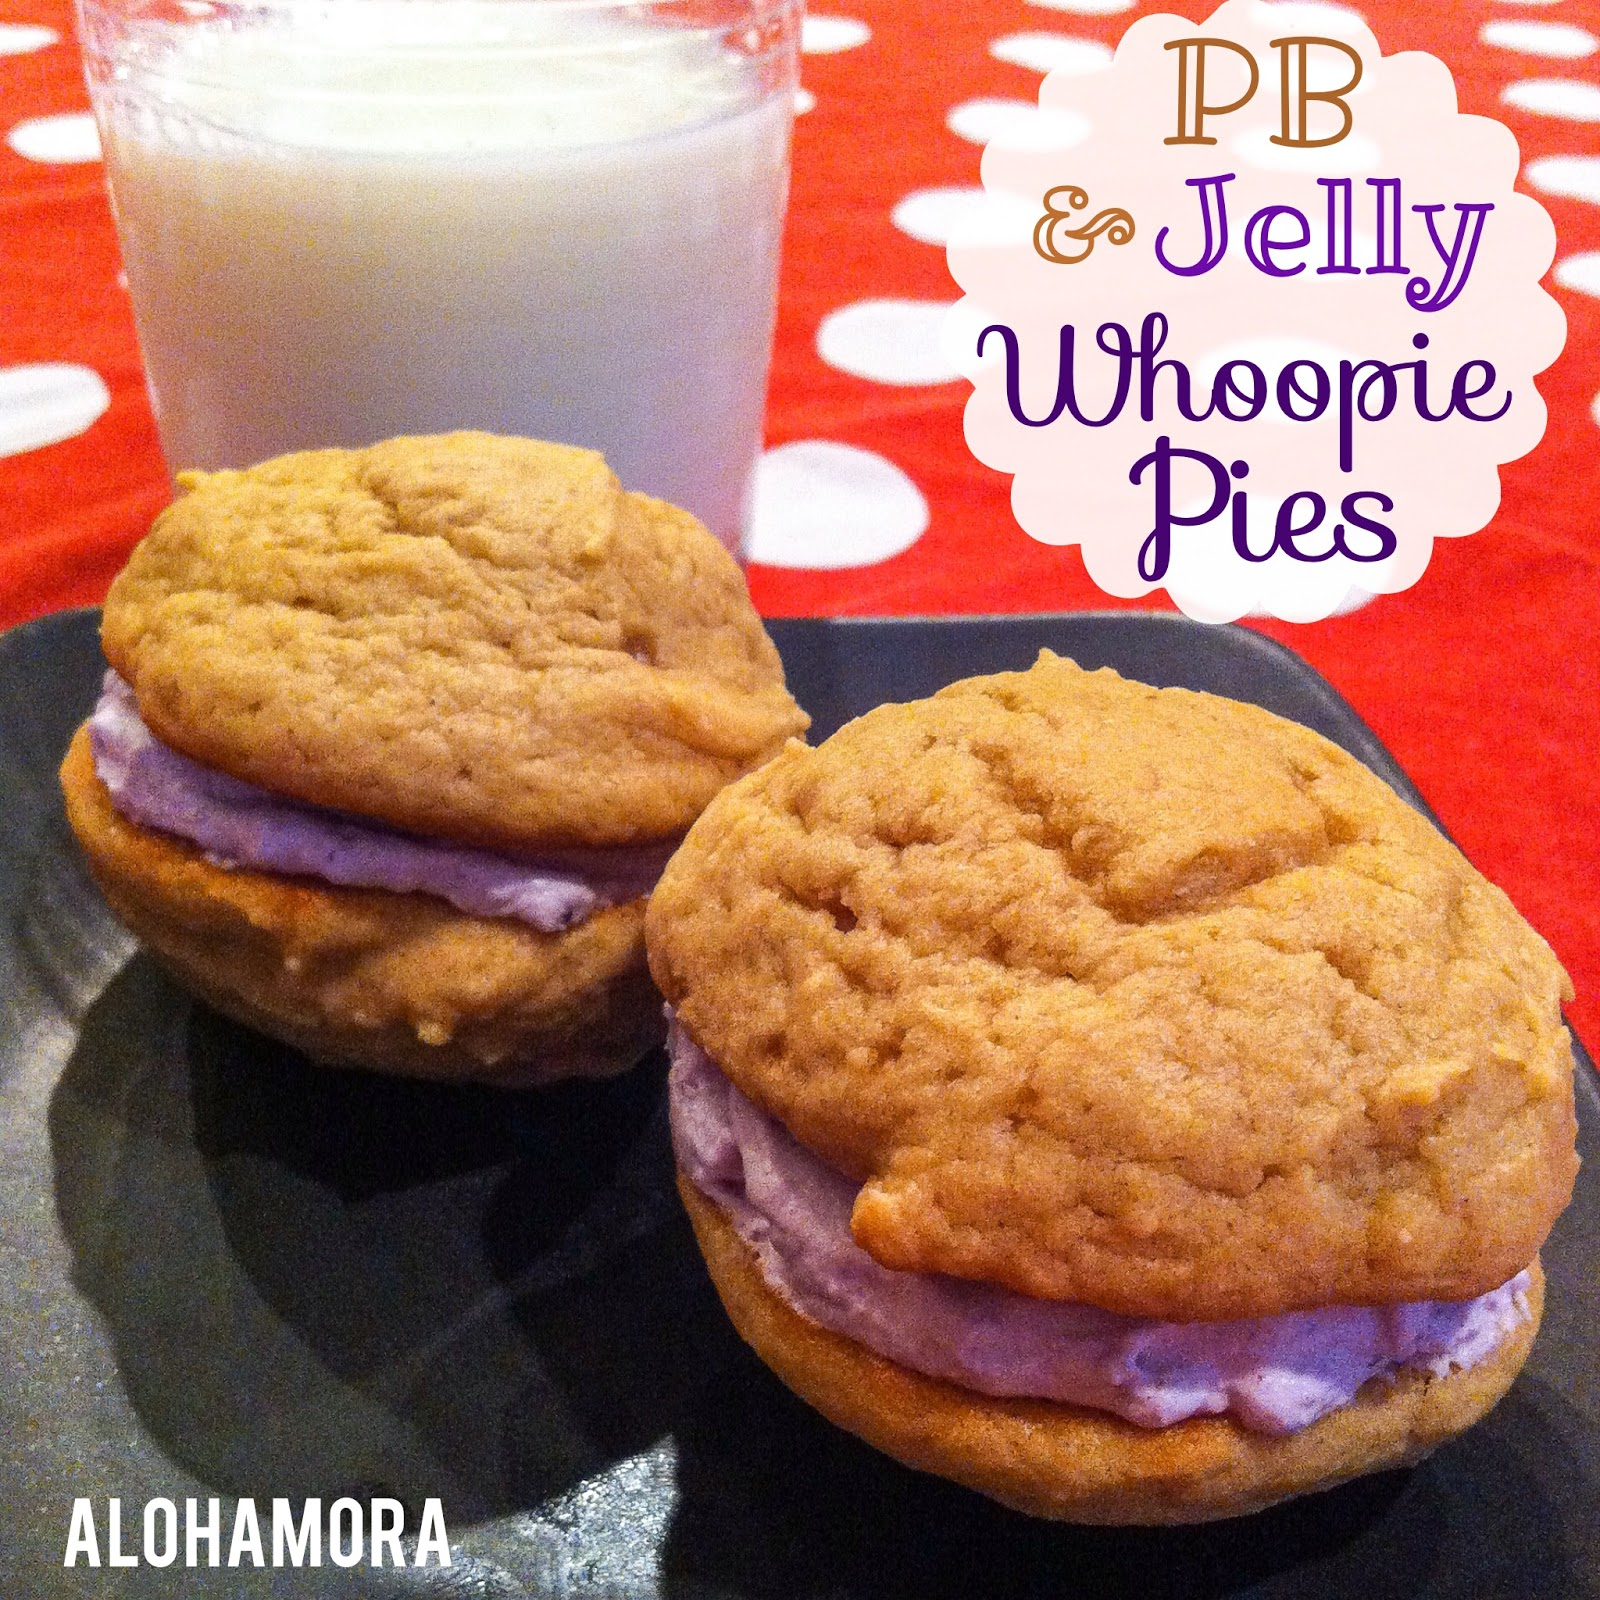 Peanut Butter and Jelly Whoopie Pies/cookies.  Light and airy and the best and most fun pb&j sandwich you'll ever have. Alohamora Open a Book http://www.alohamoraopenabook.blogspot.com/